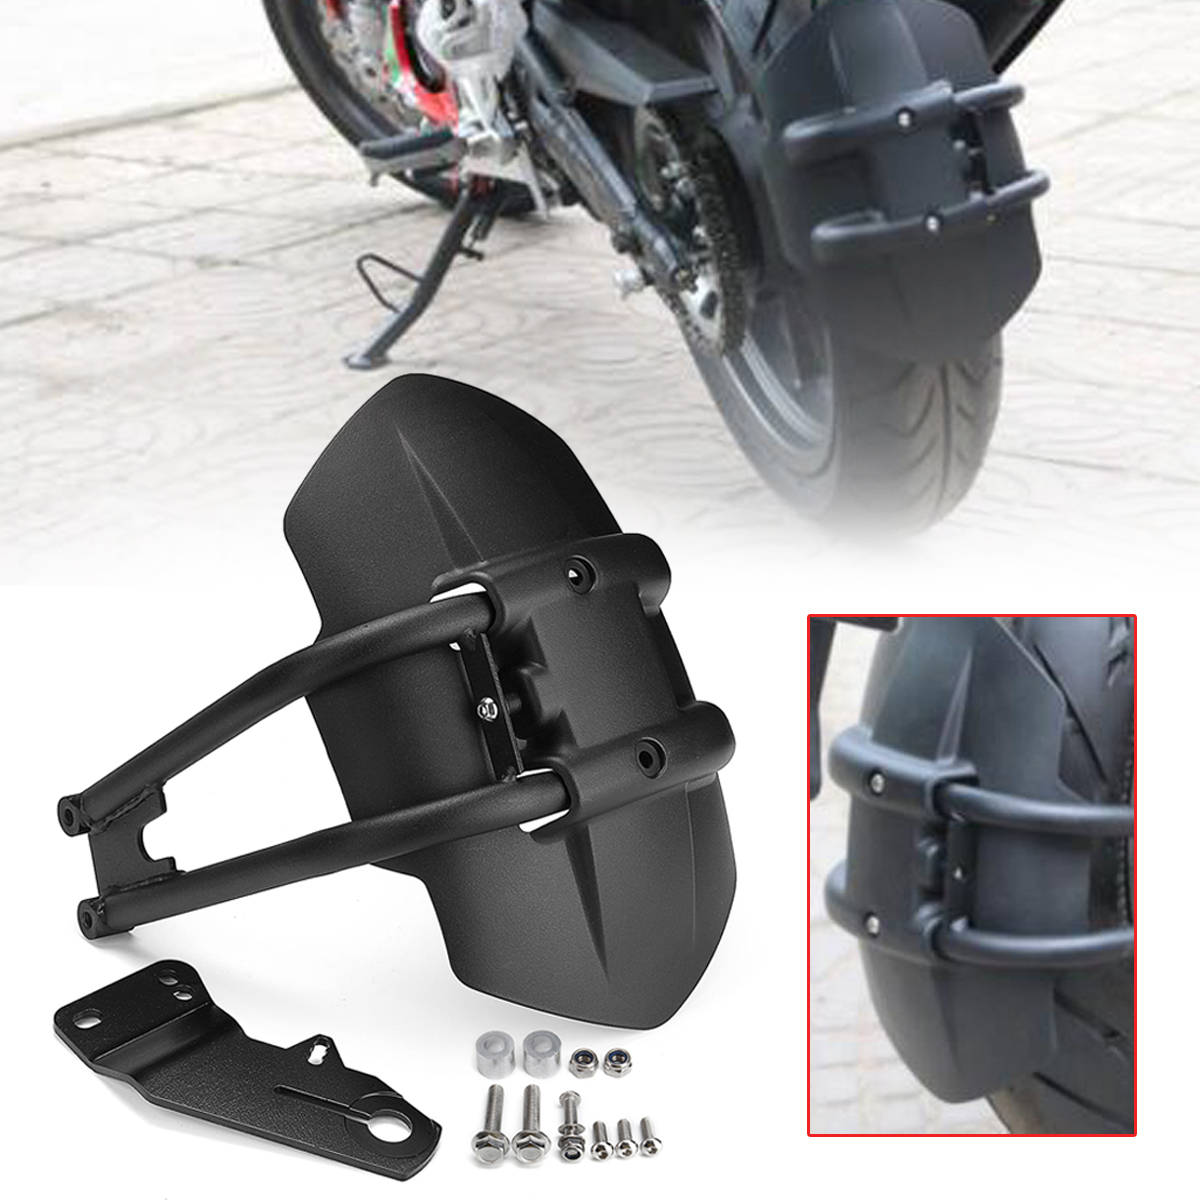 купить Motorcycle Fender Rear Cover Motorcycle Back Mudguard Splash Guard For for Honda NC700/NC750D/CB1300/CB400 по цене 1882.85 рублей